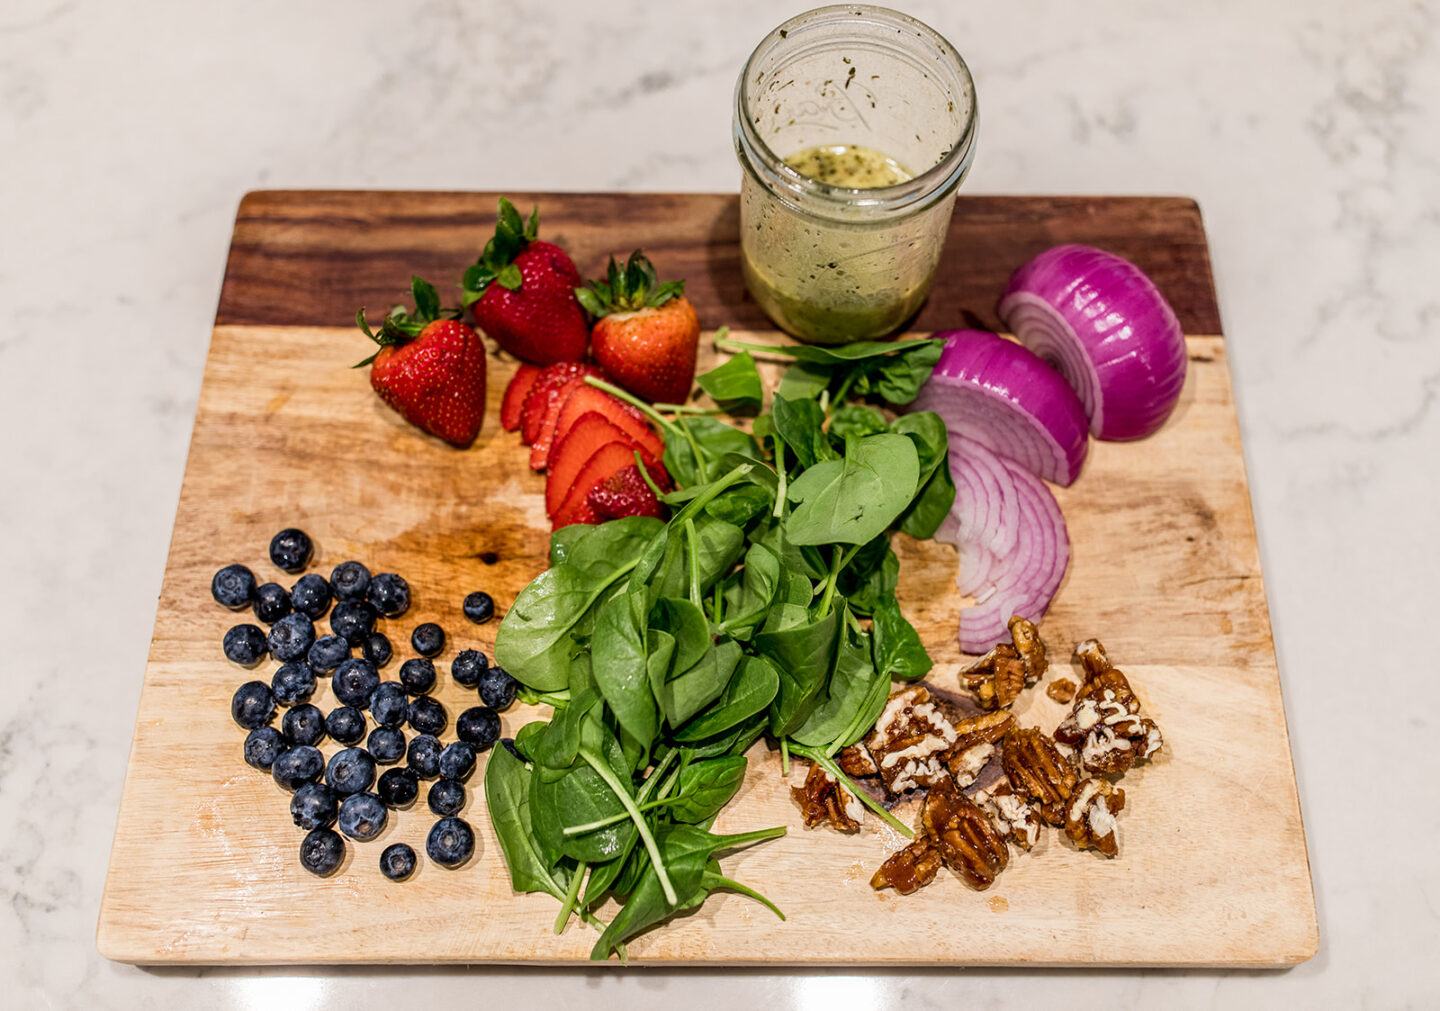 Easy Vegan Spinach and Berry Salad with pecans, a recipe featured by top Atlanta lifestyle blogger, Moderately High Maintenance   Berry Salad Recipe by popular Atlanta lifestyle blog, Moderately High Maintenance: image of strawberries, blueberries, spinach, red onions, salad dressing in a mason jar, and candied pecans on a wooden cutting board.